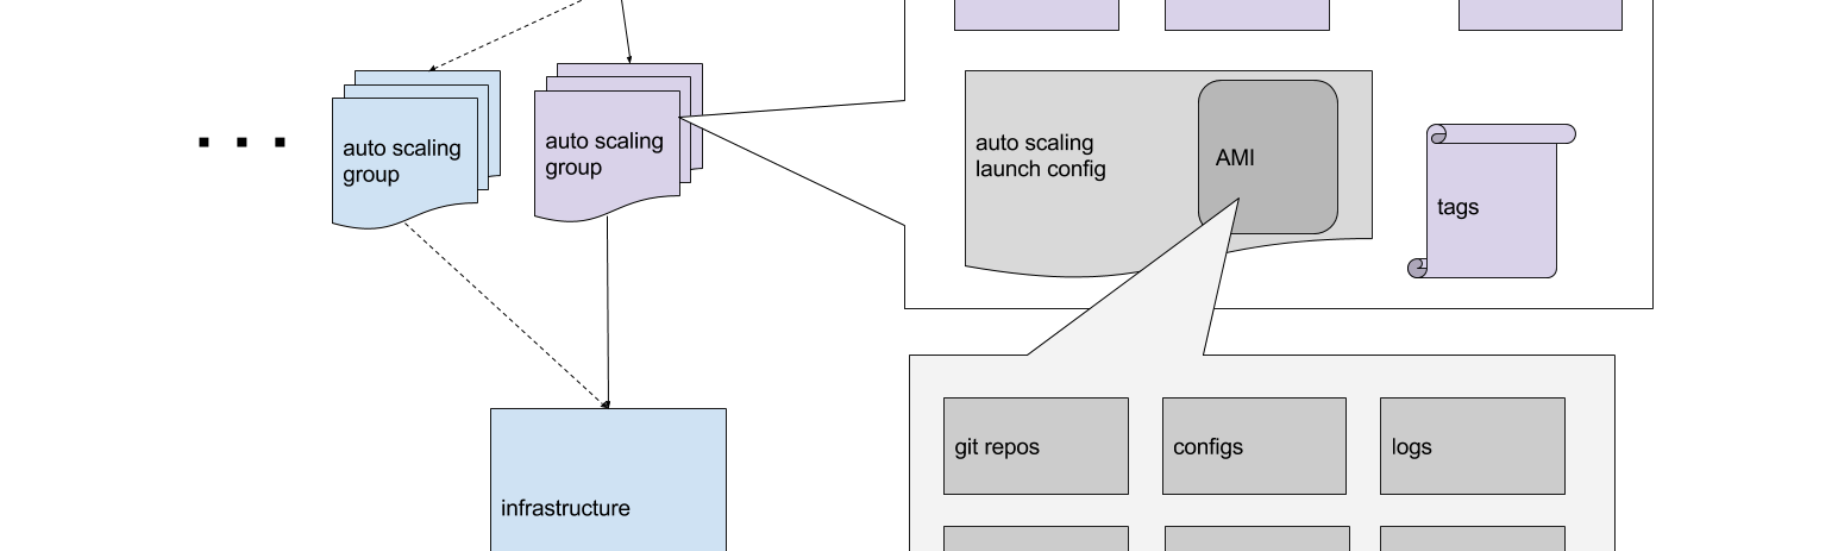 Migrating from Heroku to AWS: Our Story - AdStage Engineering - Medium